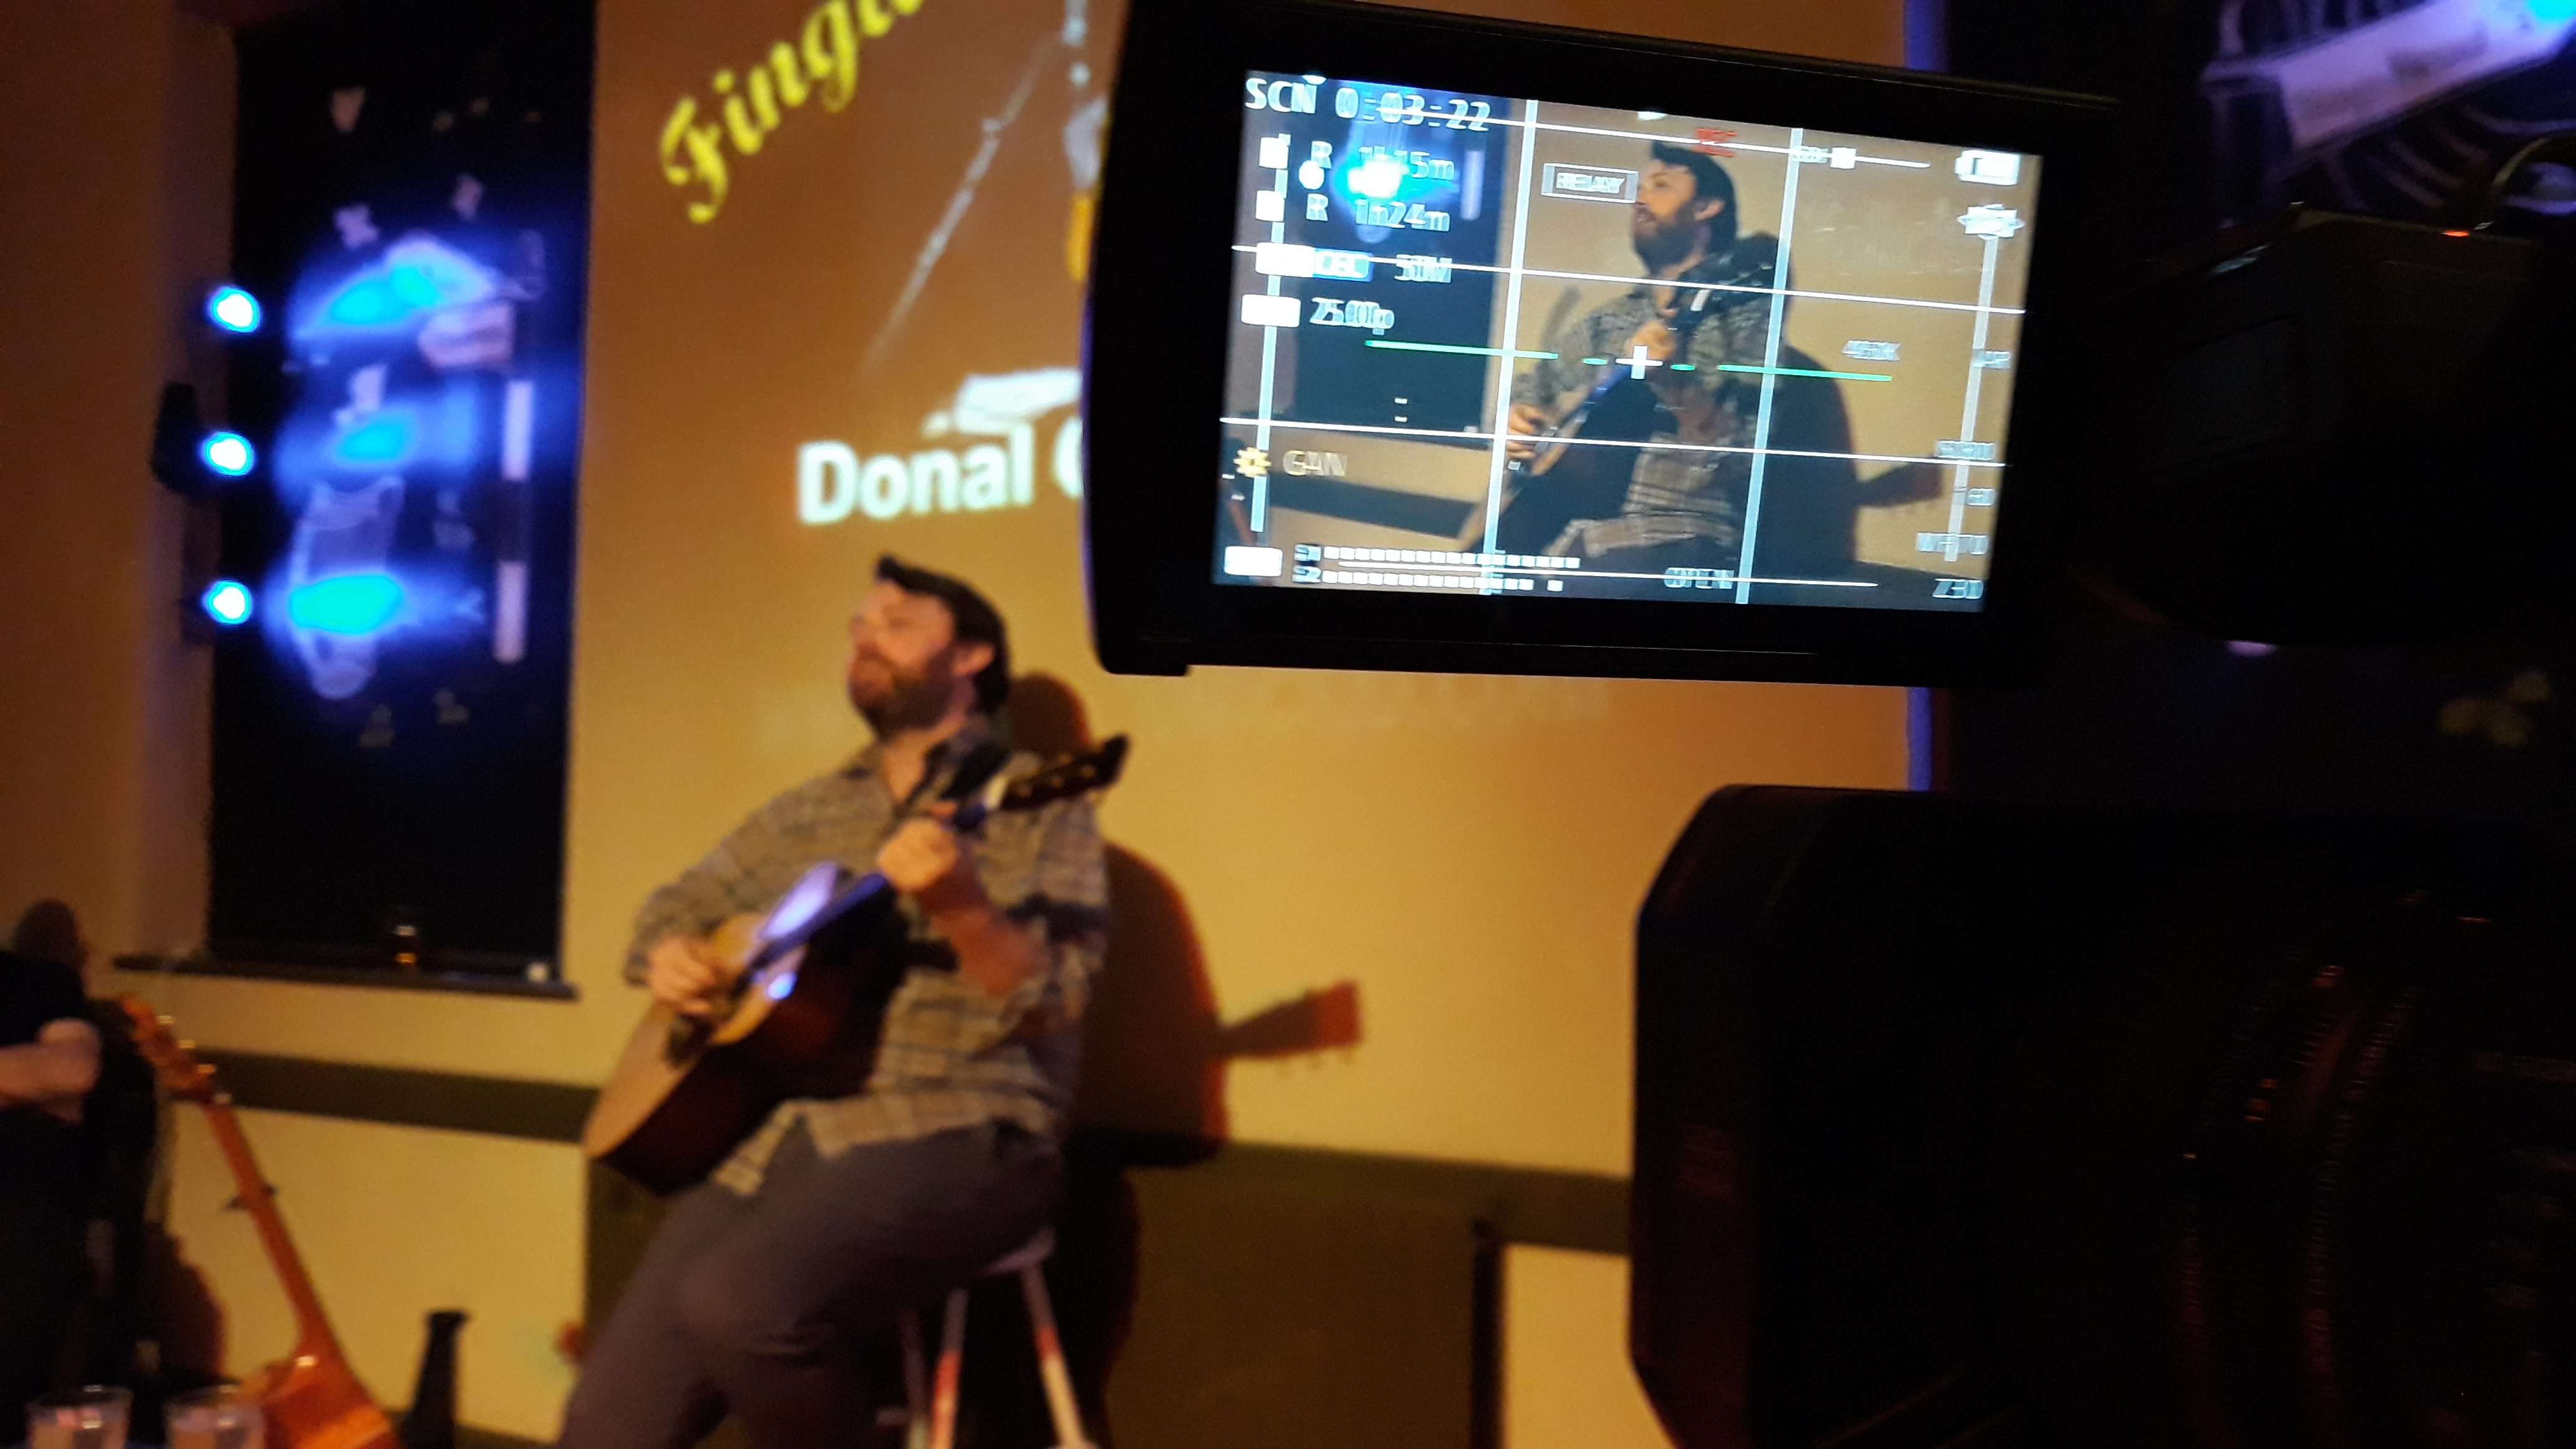 Donal Clancy performing at the Fingla Folk Club